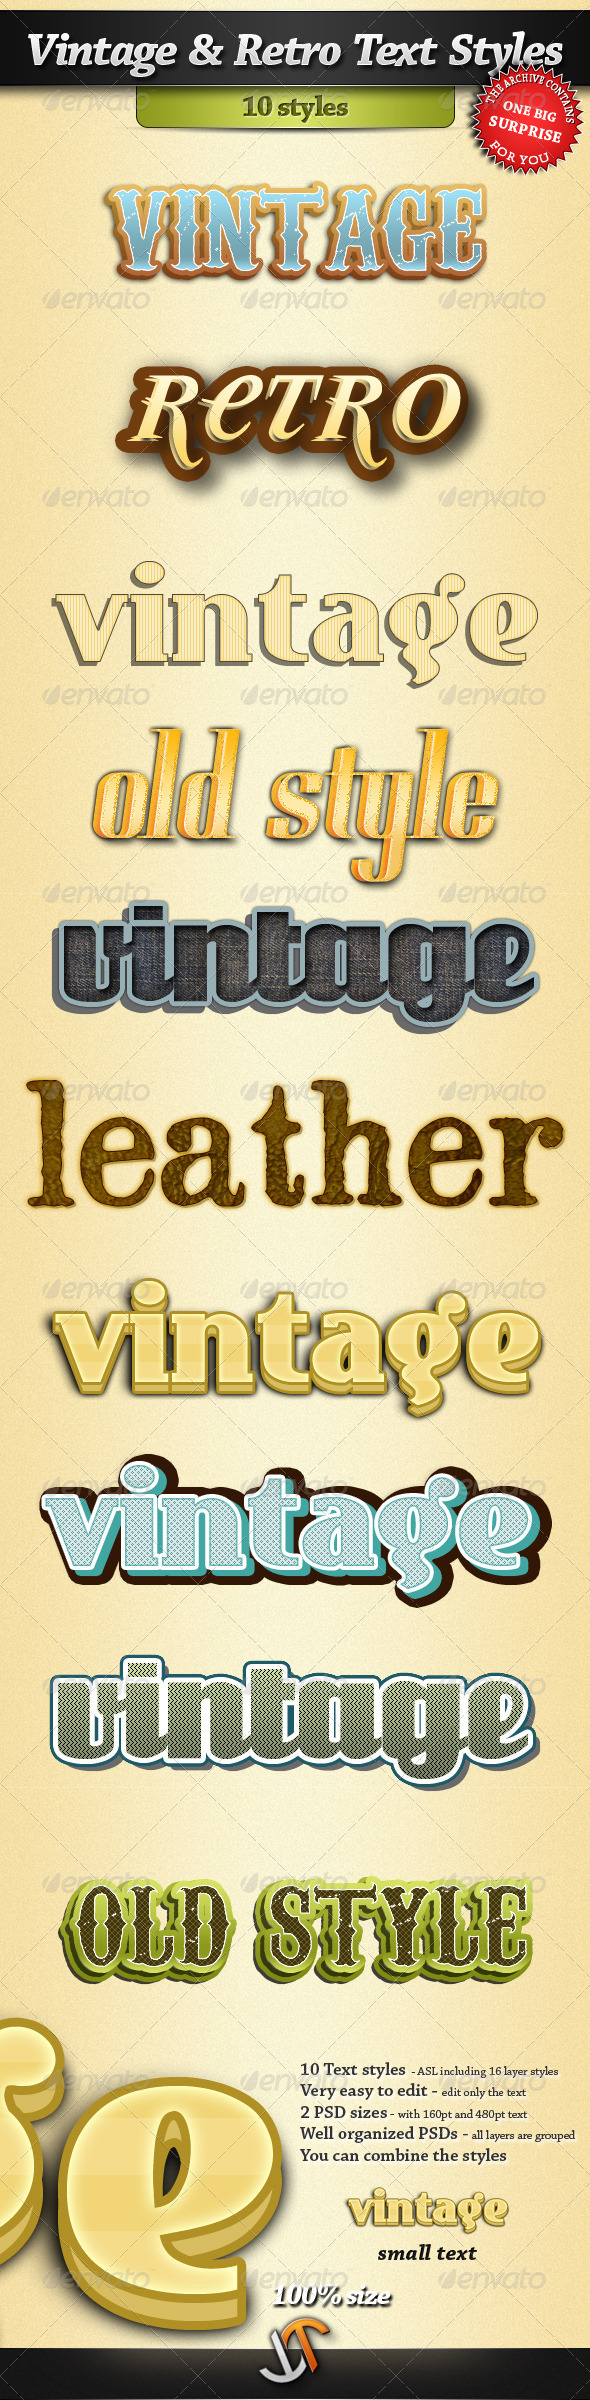 GraphicRiver Vintage and Retro Text Styles 408598